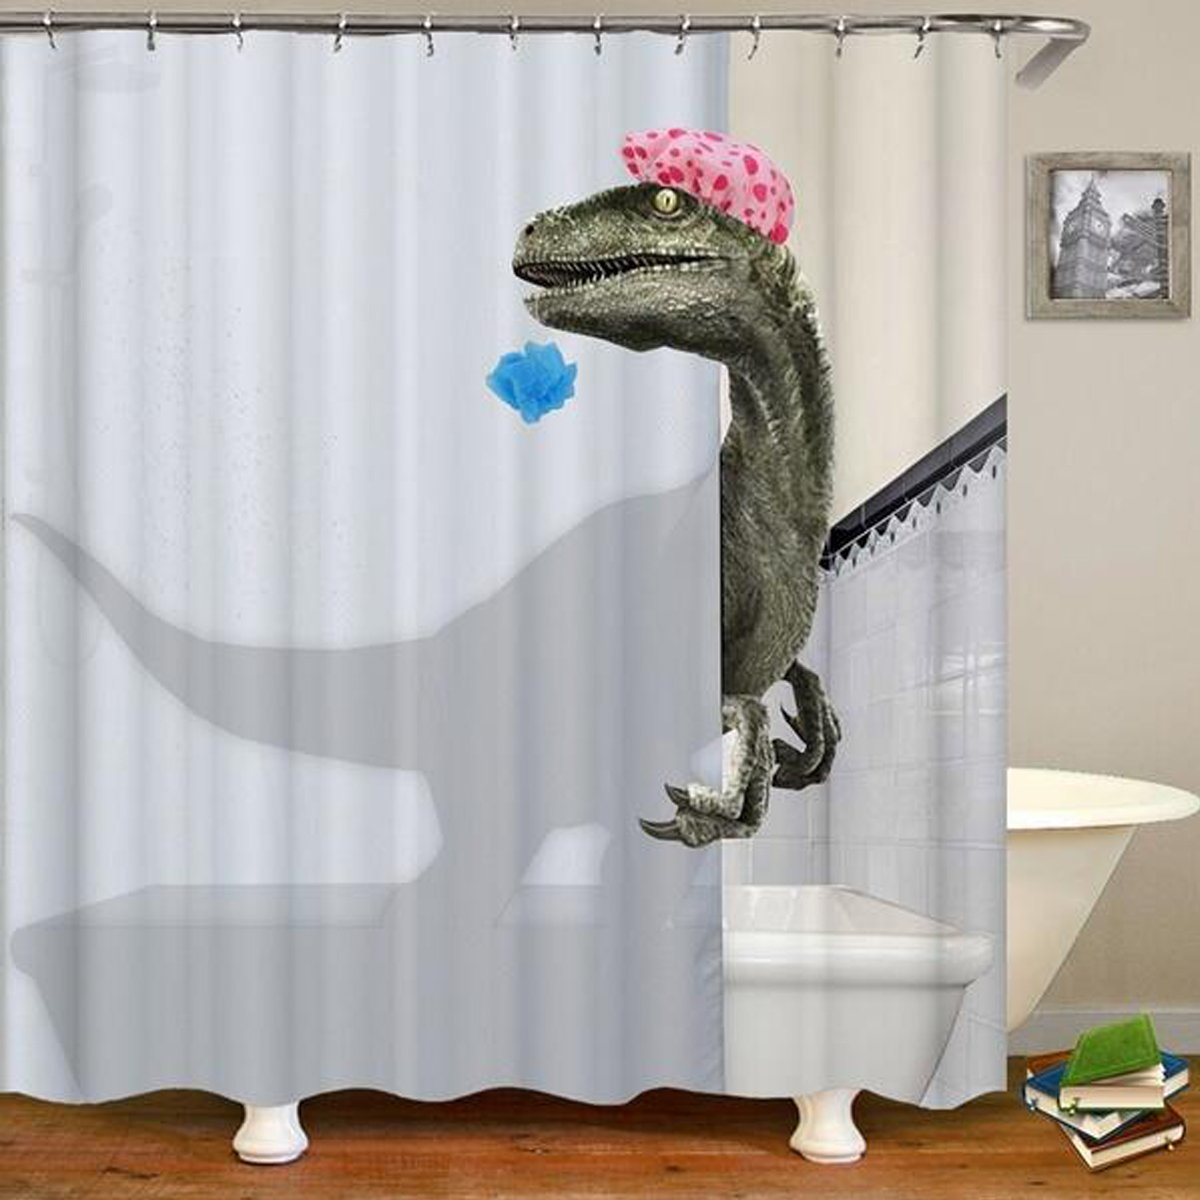 FunnyBathroom™ Dino Shower Curtain & Bathroom Carpet Toilet Cover Set